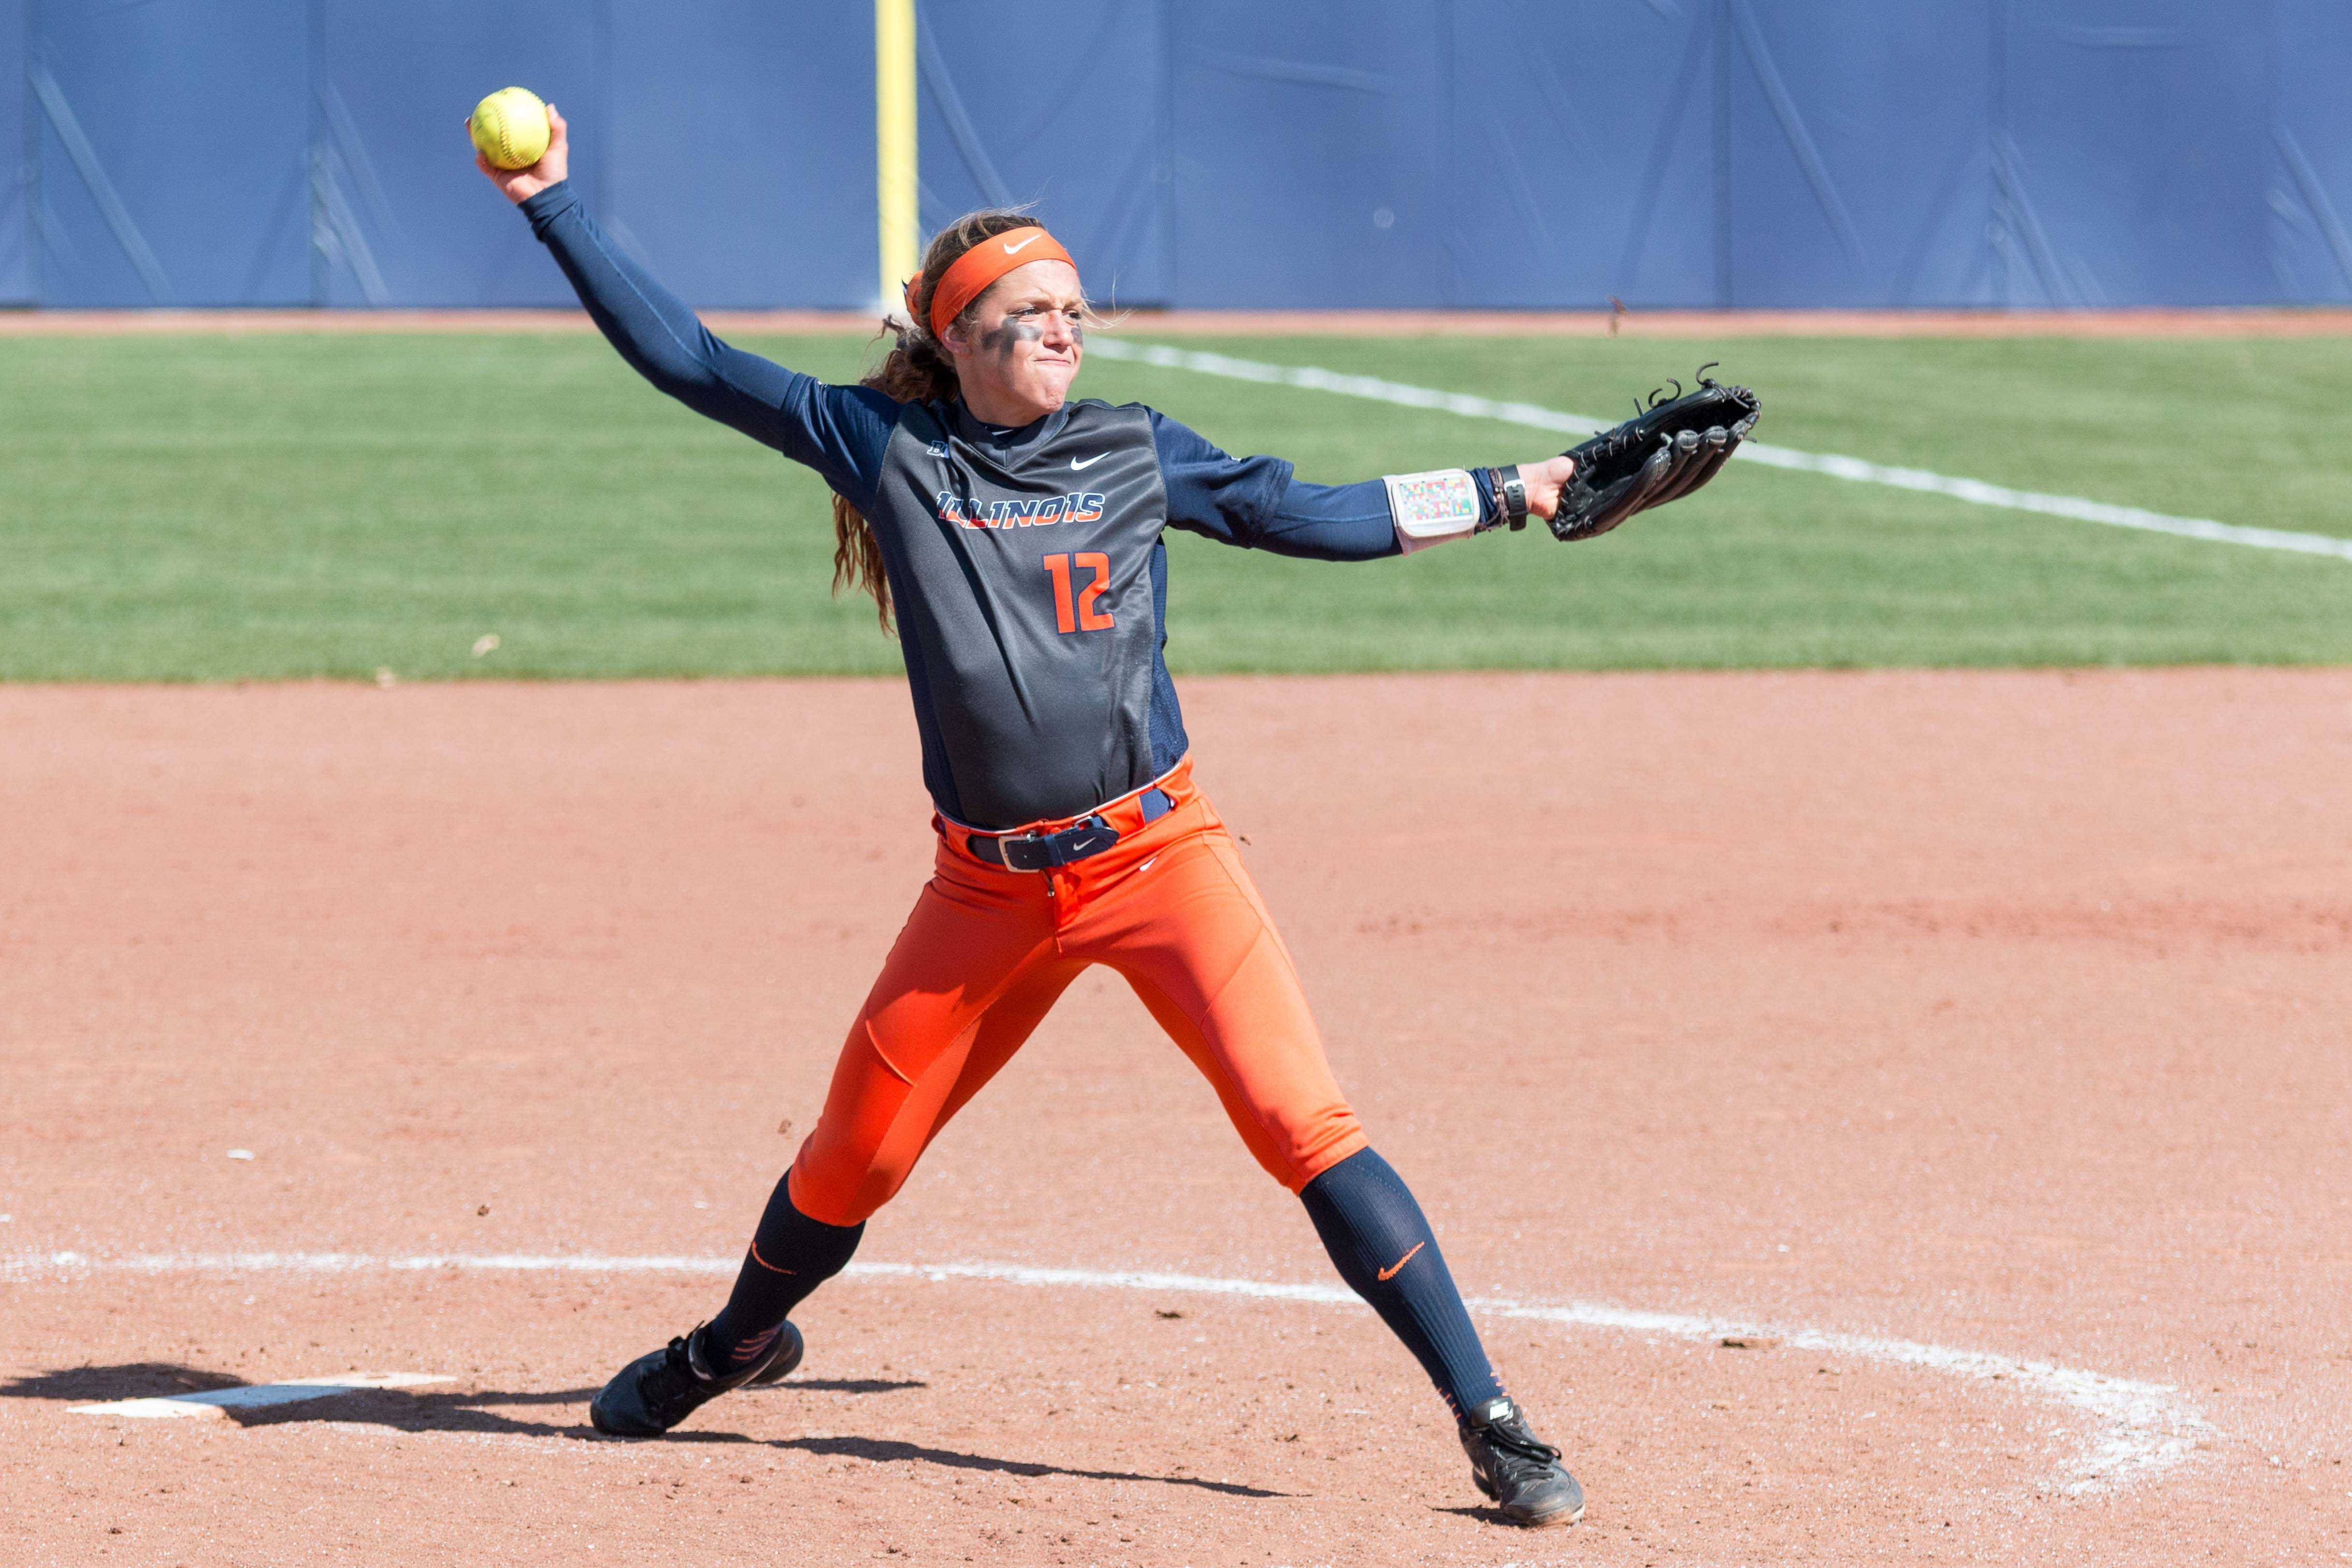 Illinois relief pitcher Taylor Edwards delivers the pitch during game two of the series against Nebraska at Eichelberger Field on Saturday, April 2. At last weekend's LSU Invitational, the Illini won against ISU, Florida Atlantic and Troy. They lost one game to LSU.